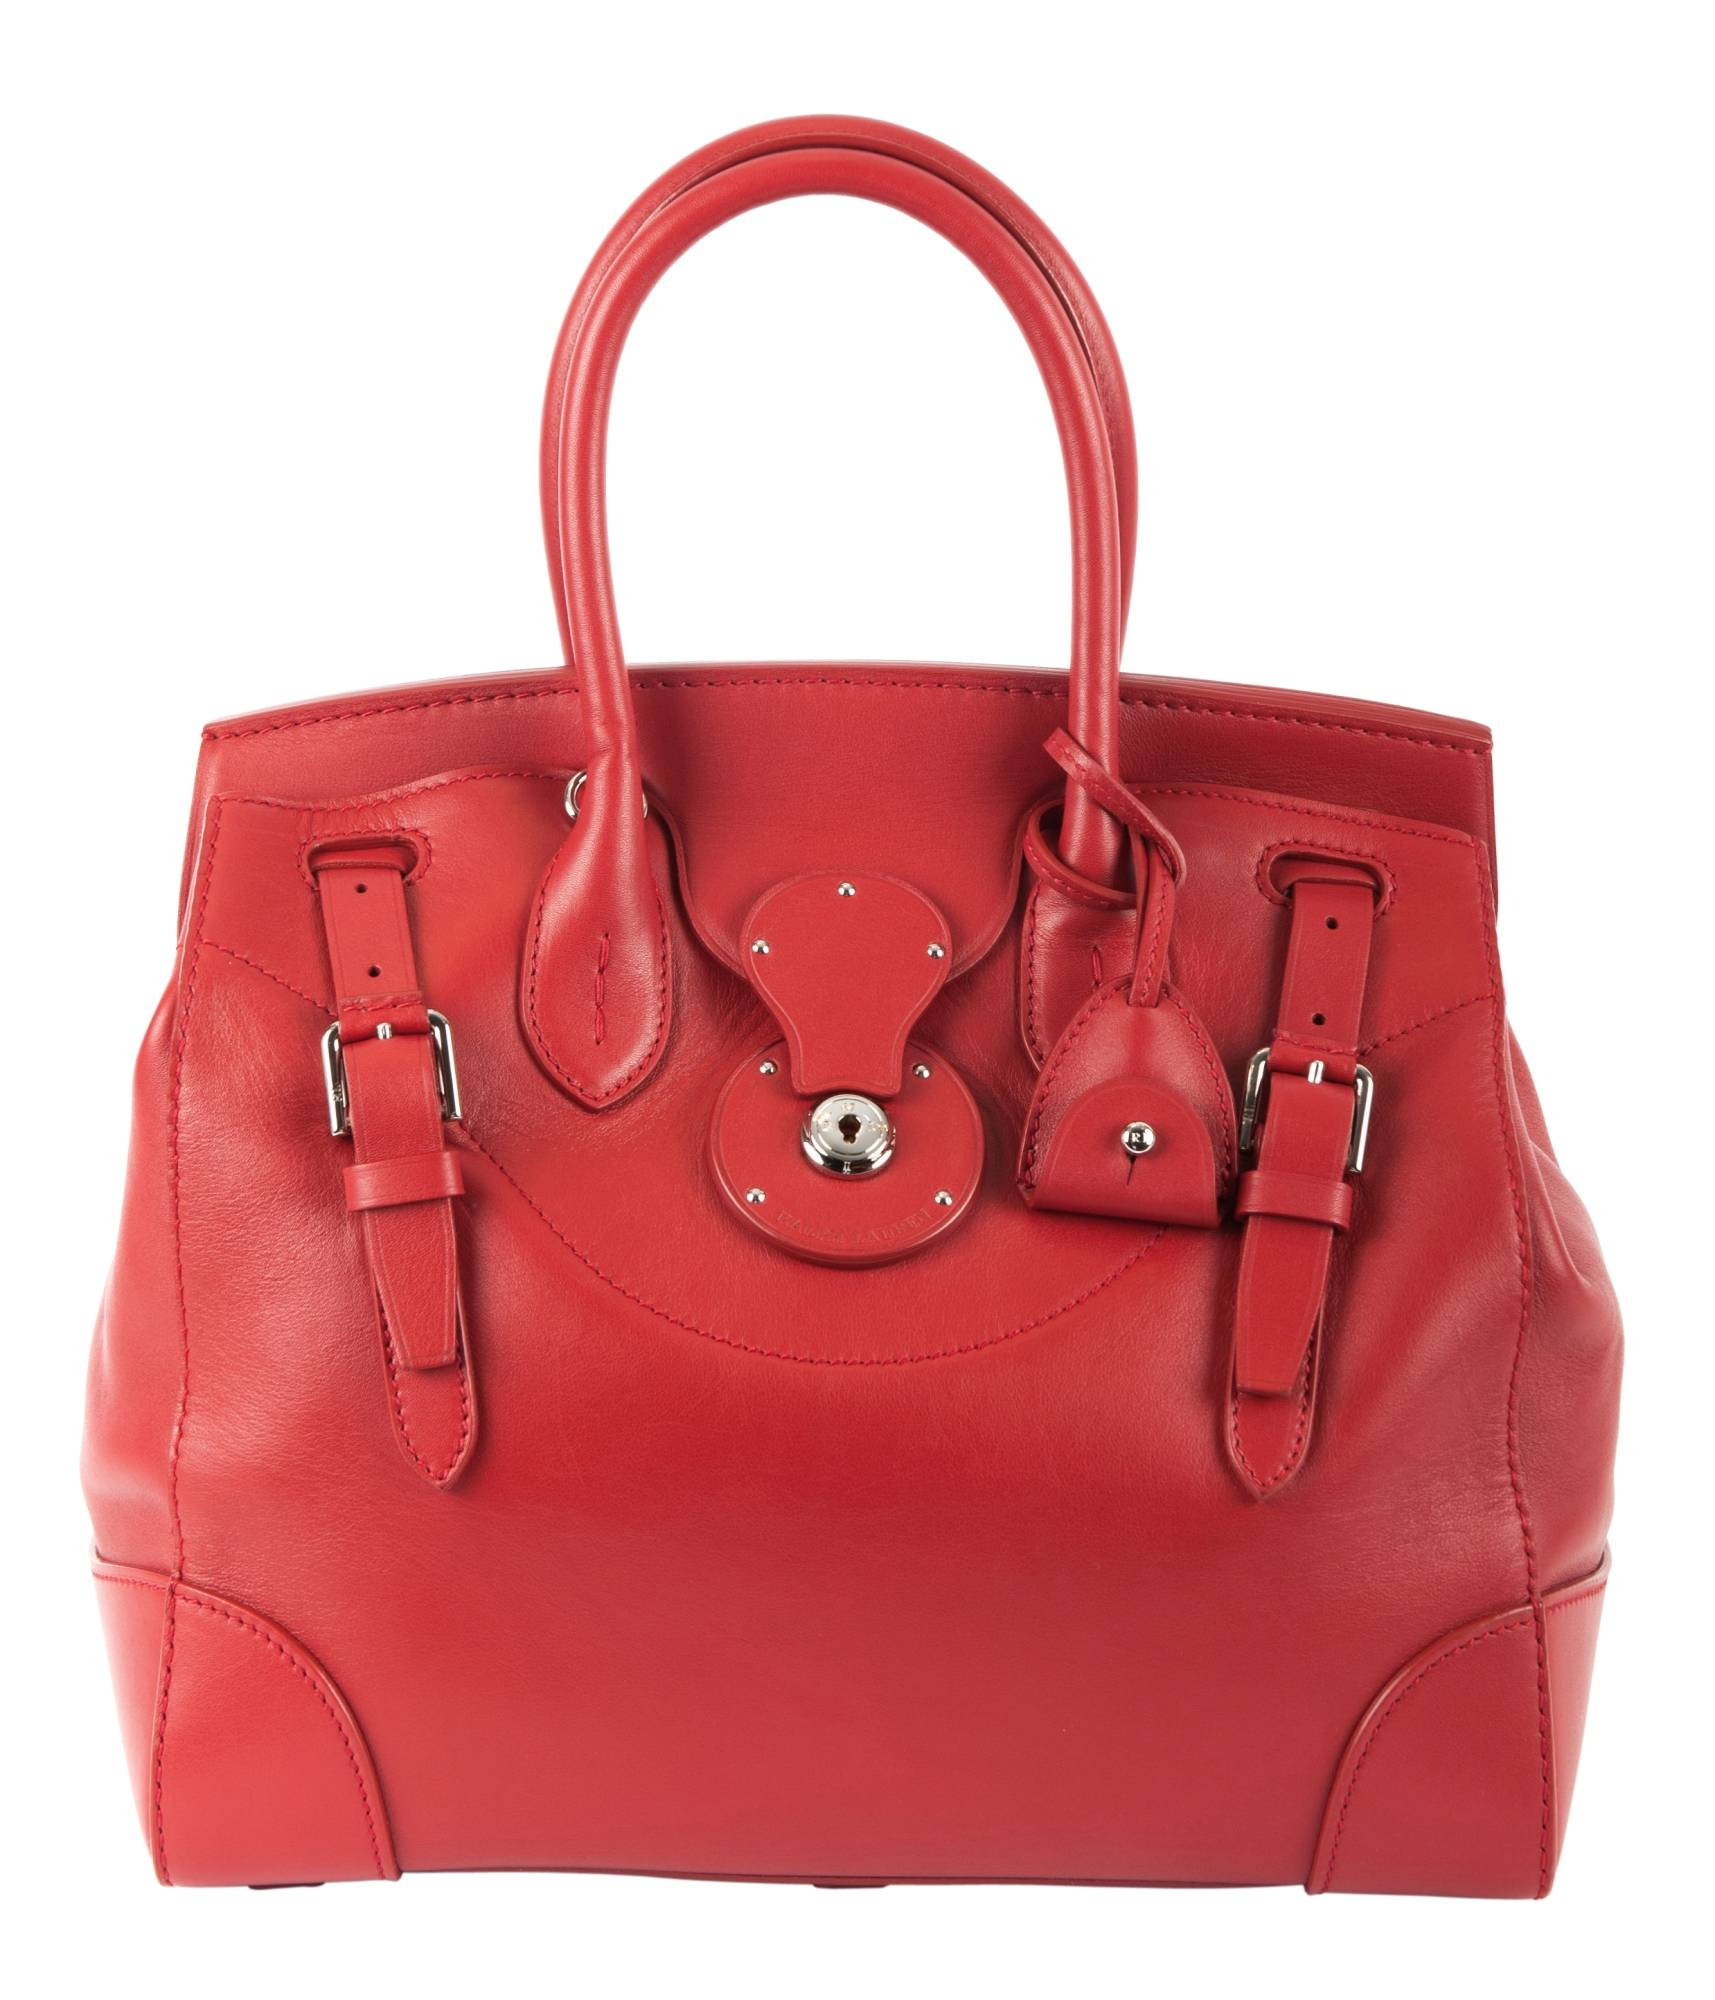 Ralph Lauren Soft Ricky Bag at Harvey Nichols – Dubai AED 10445